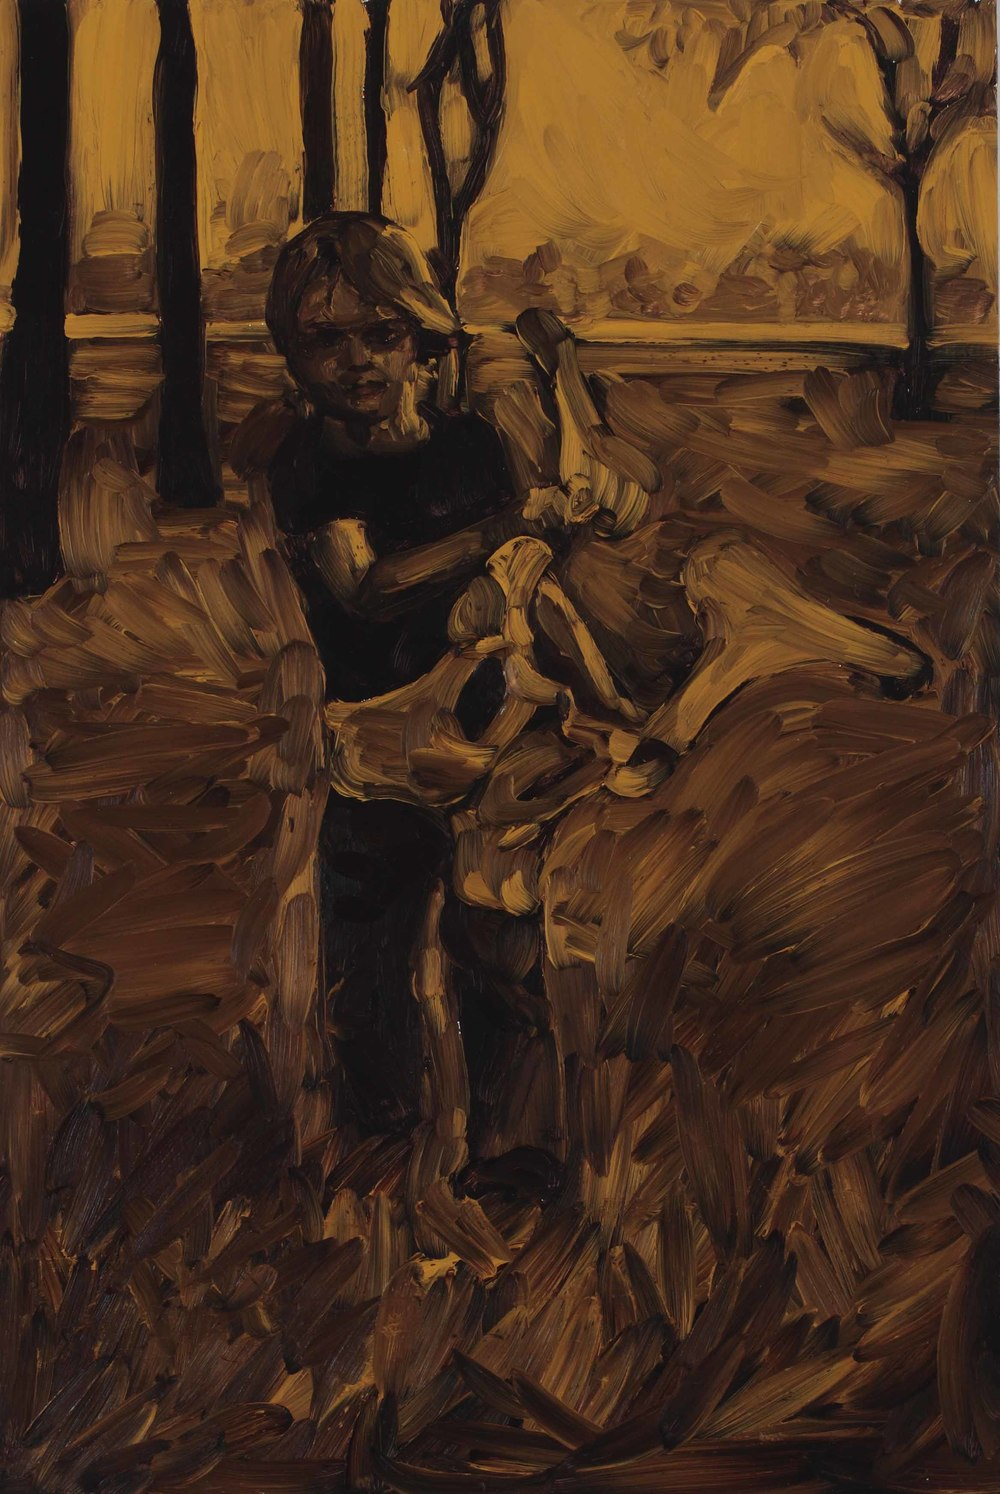 untitled, oil on board, 60 x 40 cm, 2008.